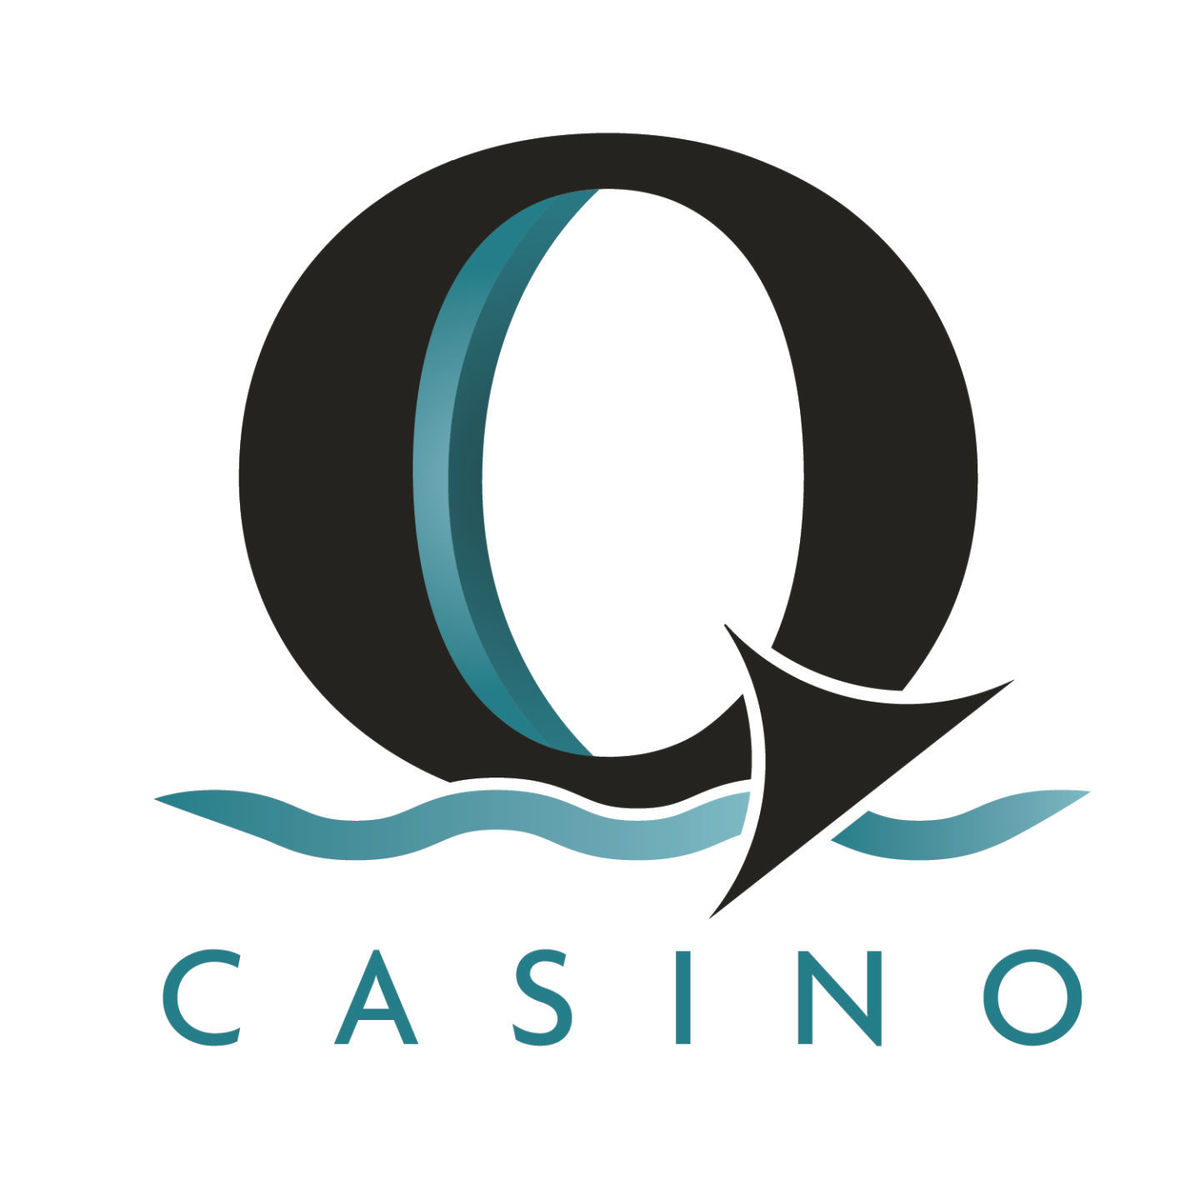 Q Casino–Dubuque, IA